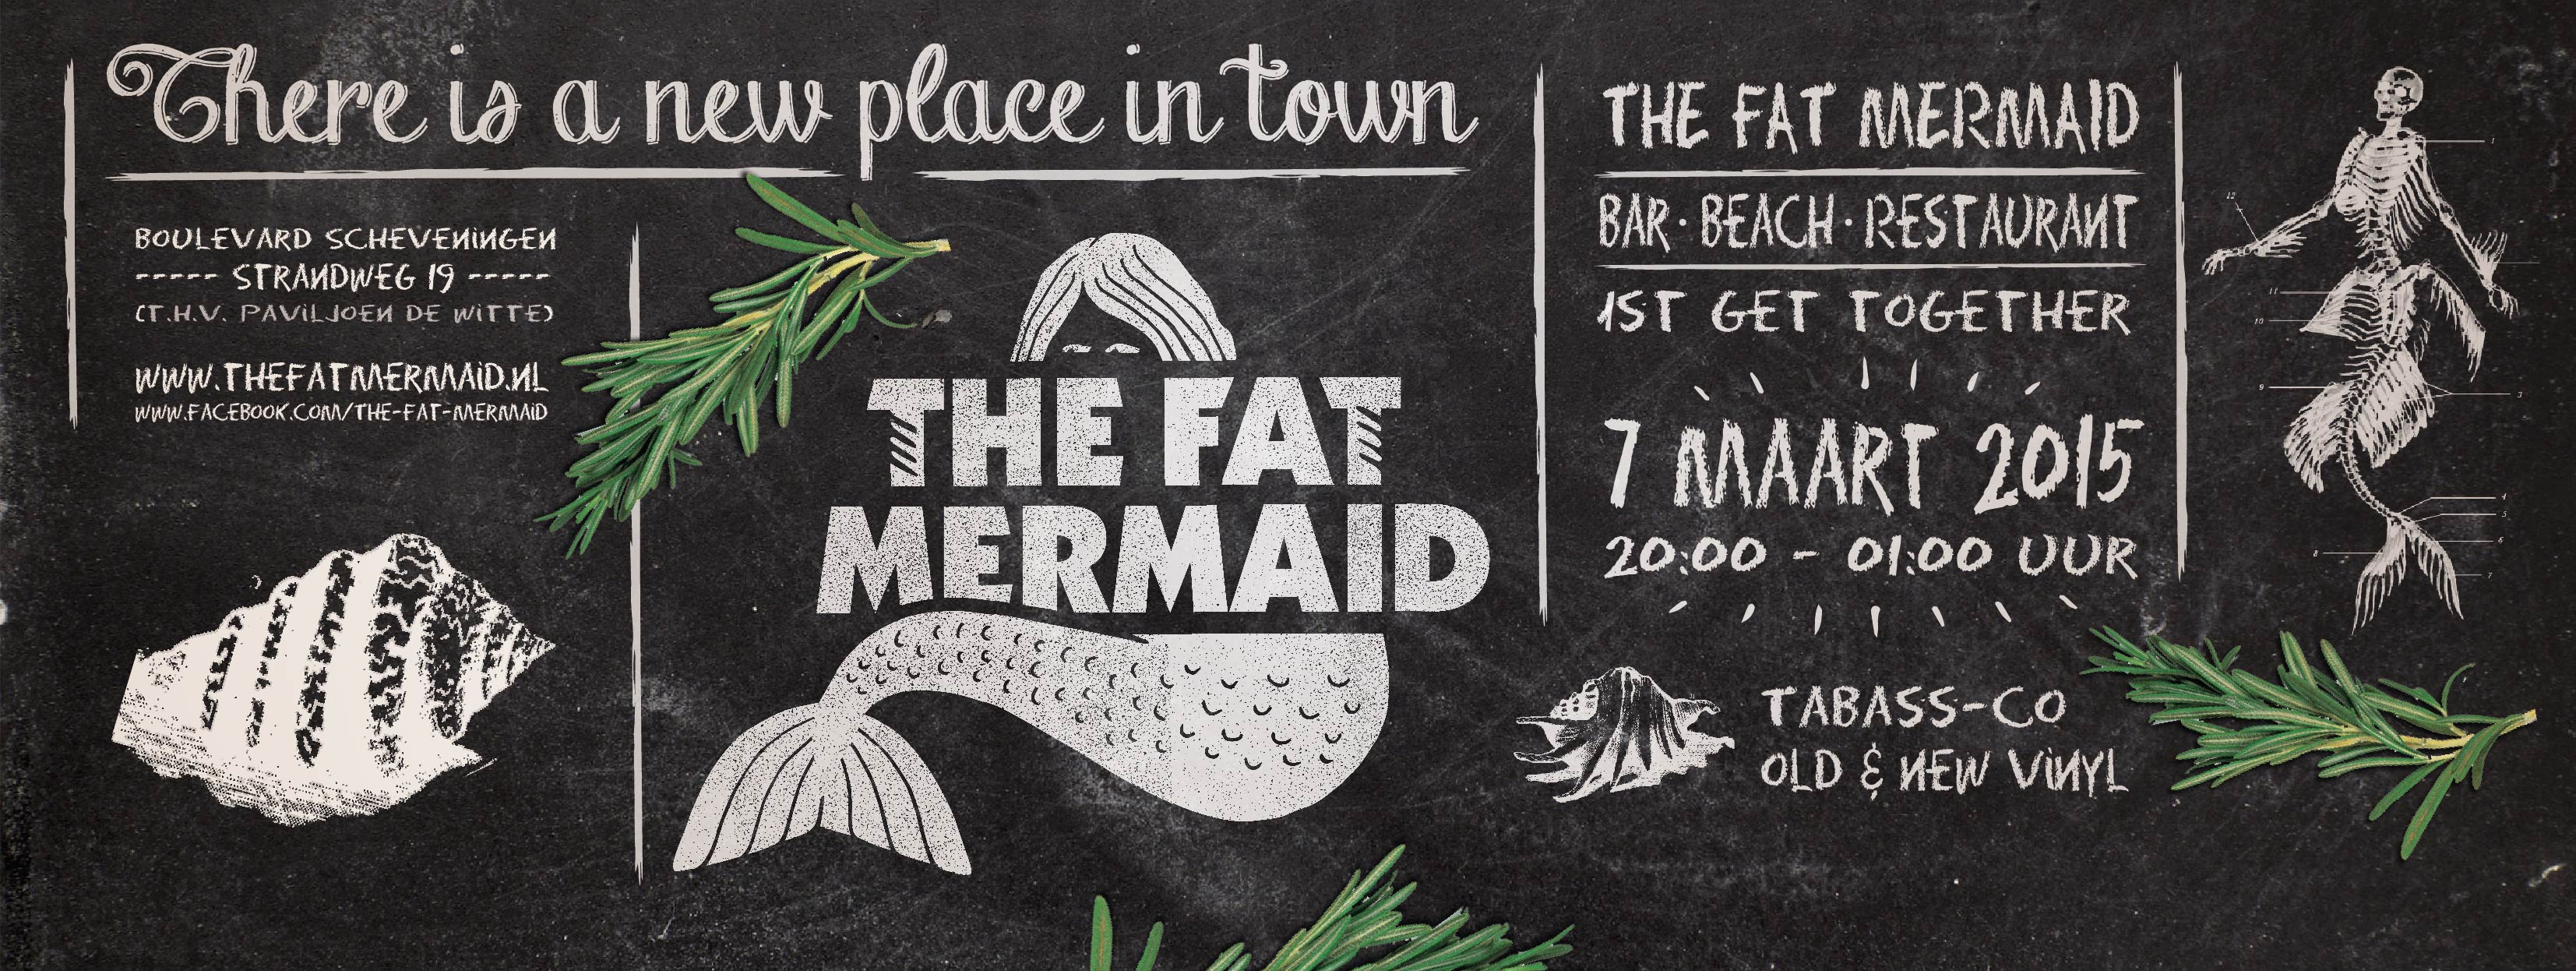 flyer_the-fat-mermaid